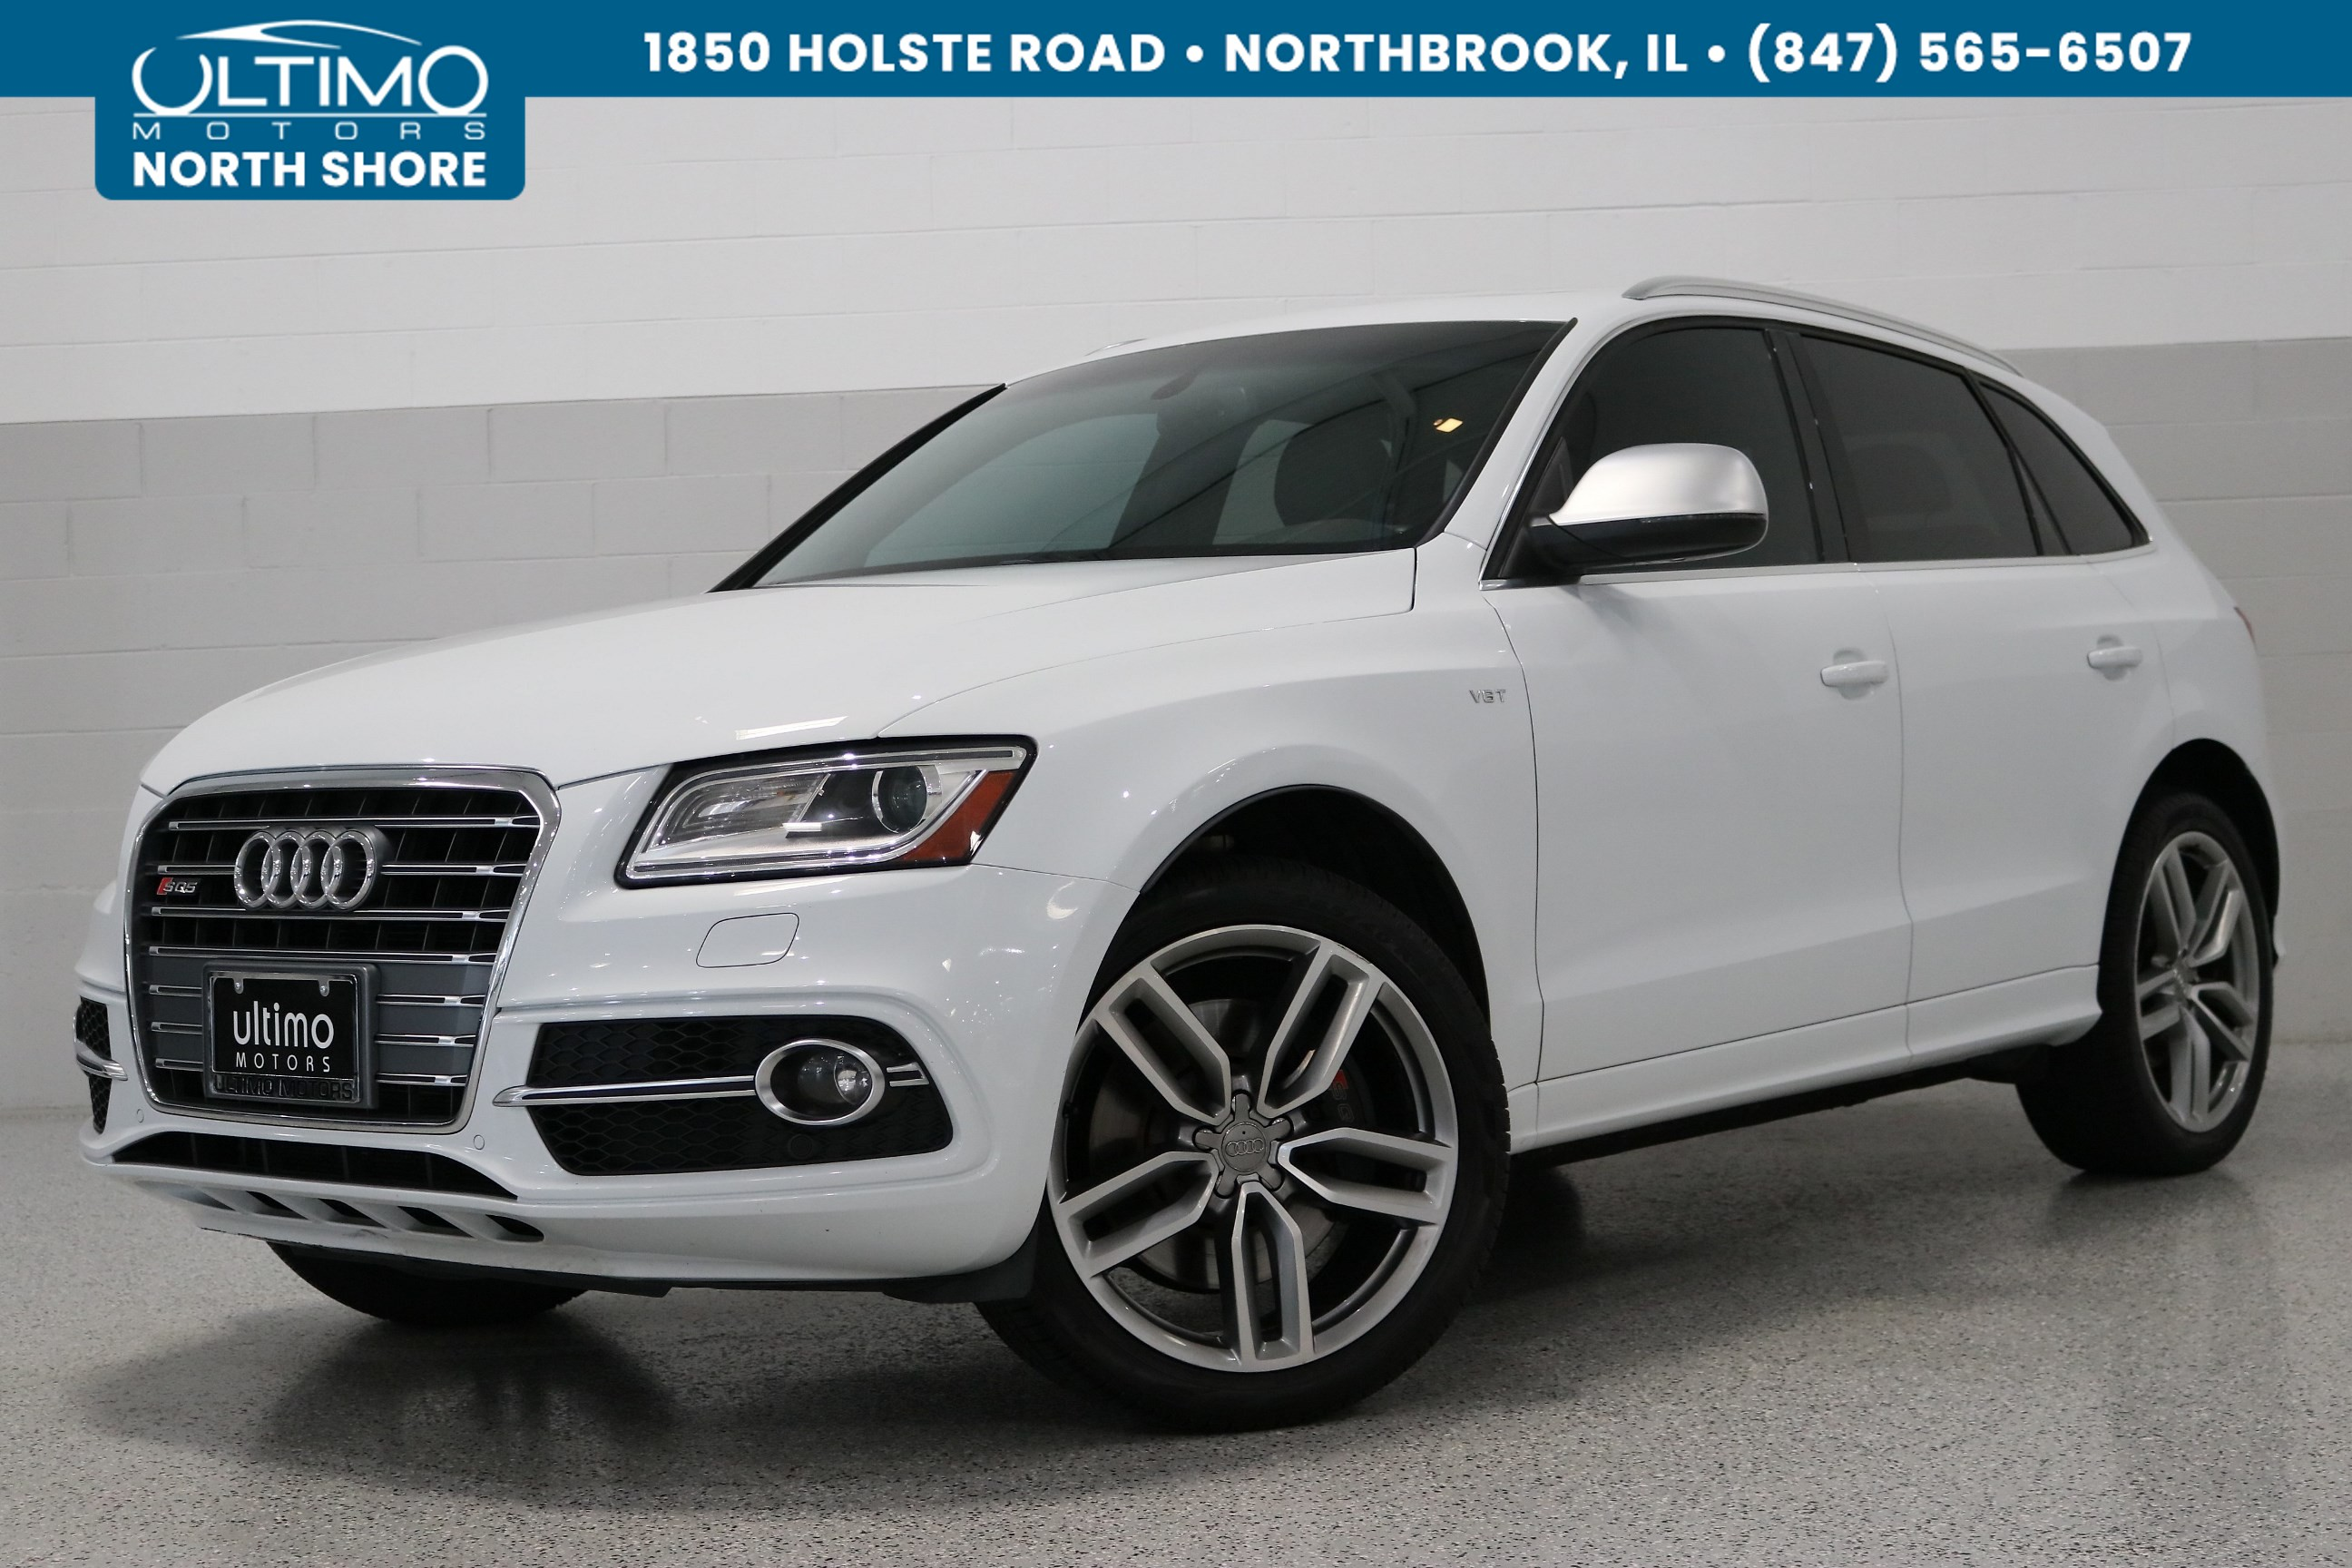 Pre-Owned 2014 Audi SQ5 3.0T Premium Plus